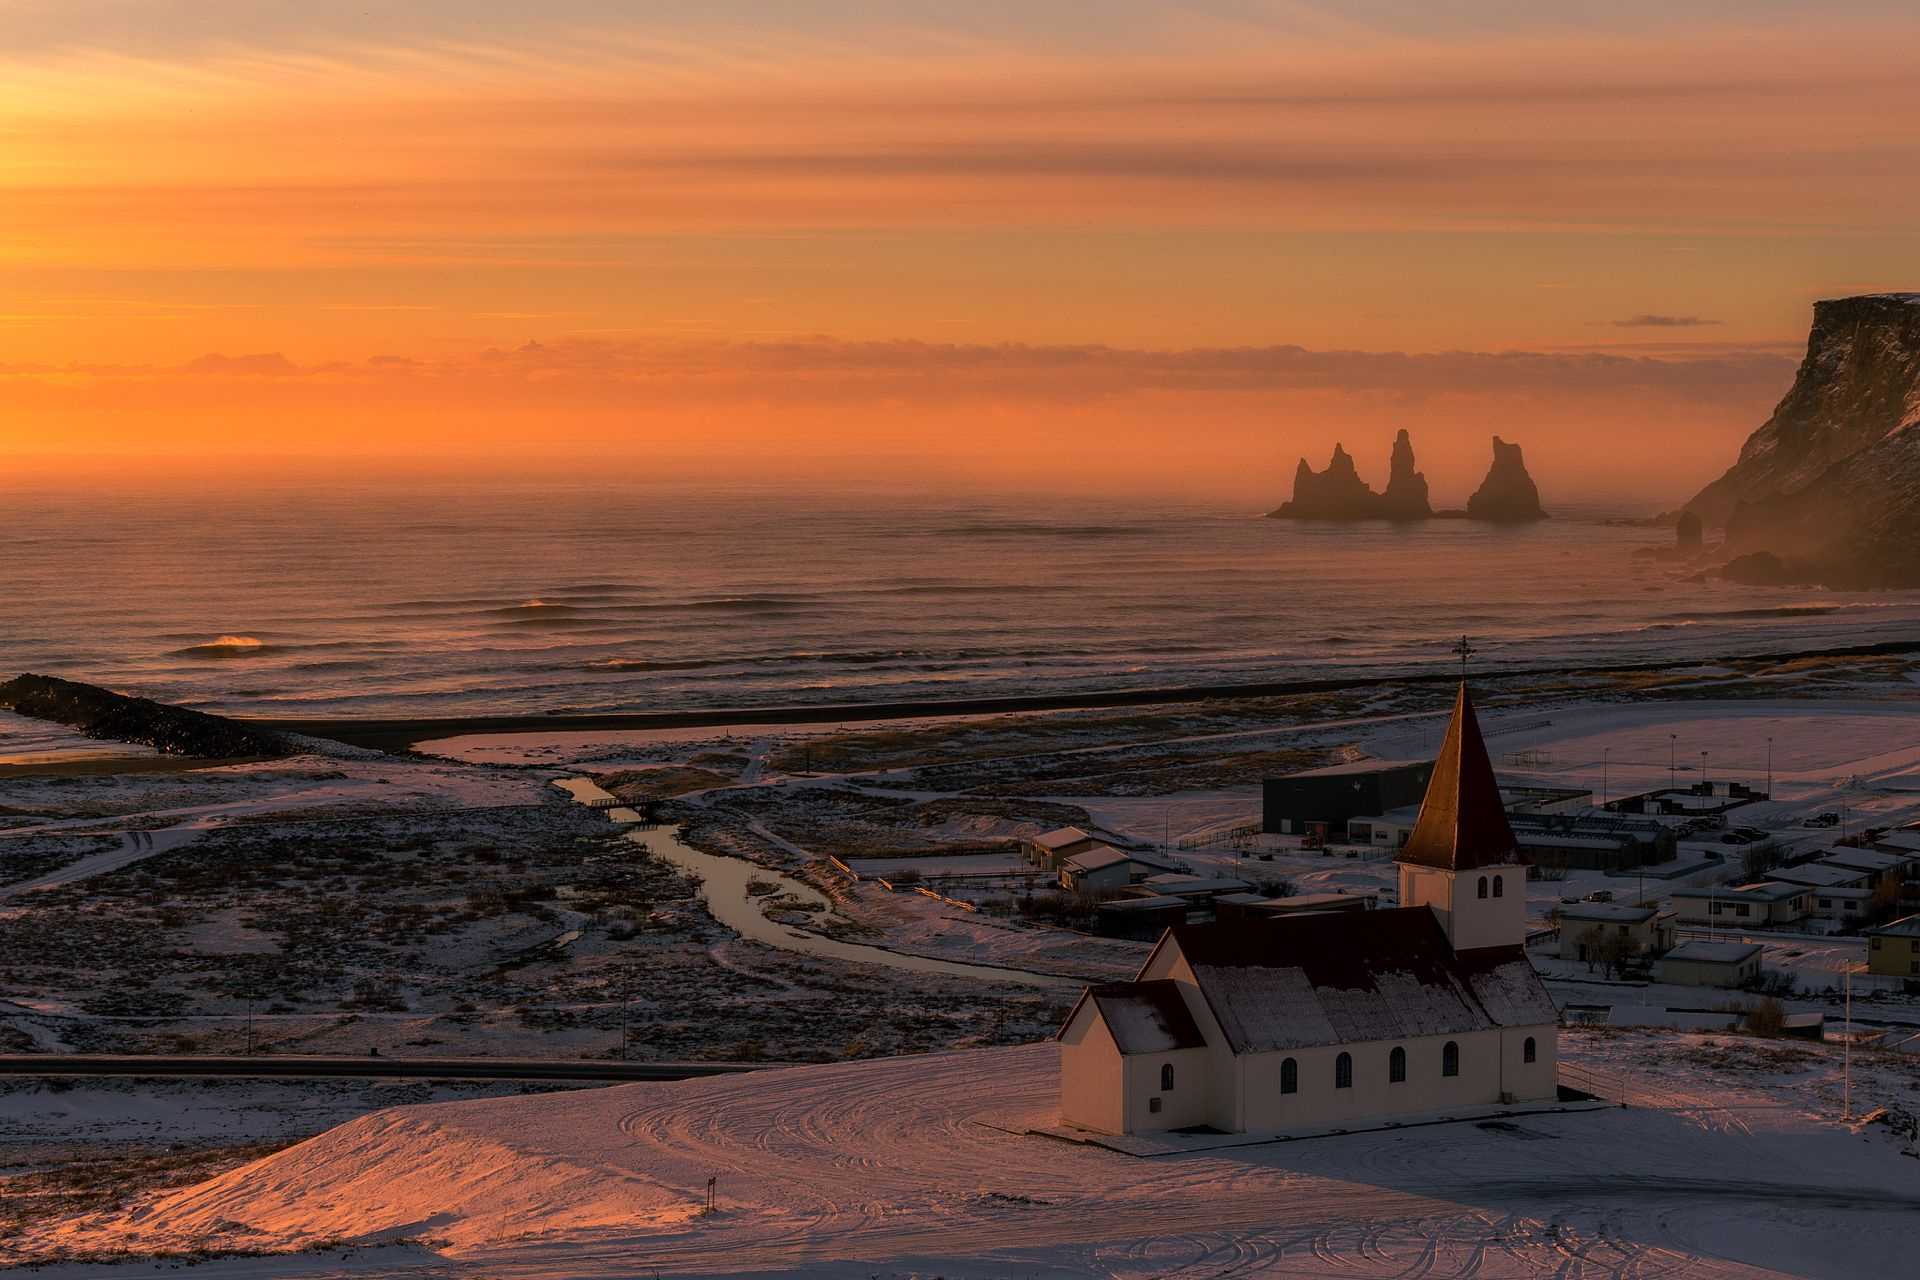 Landscapes in Iceland: amongst ice and silence